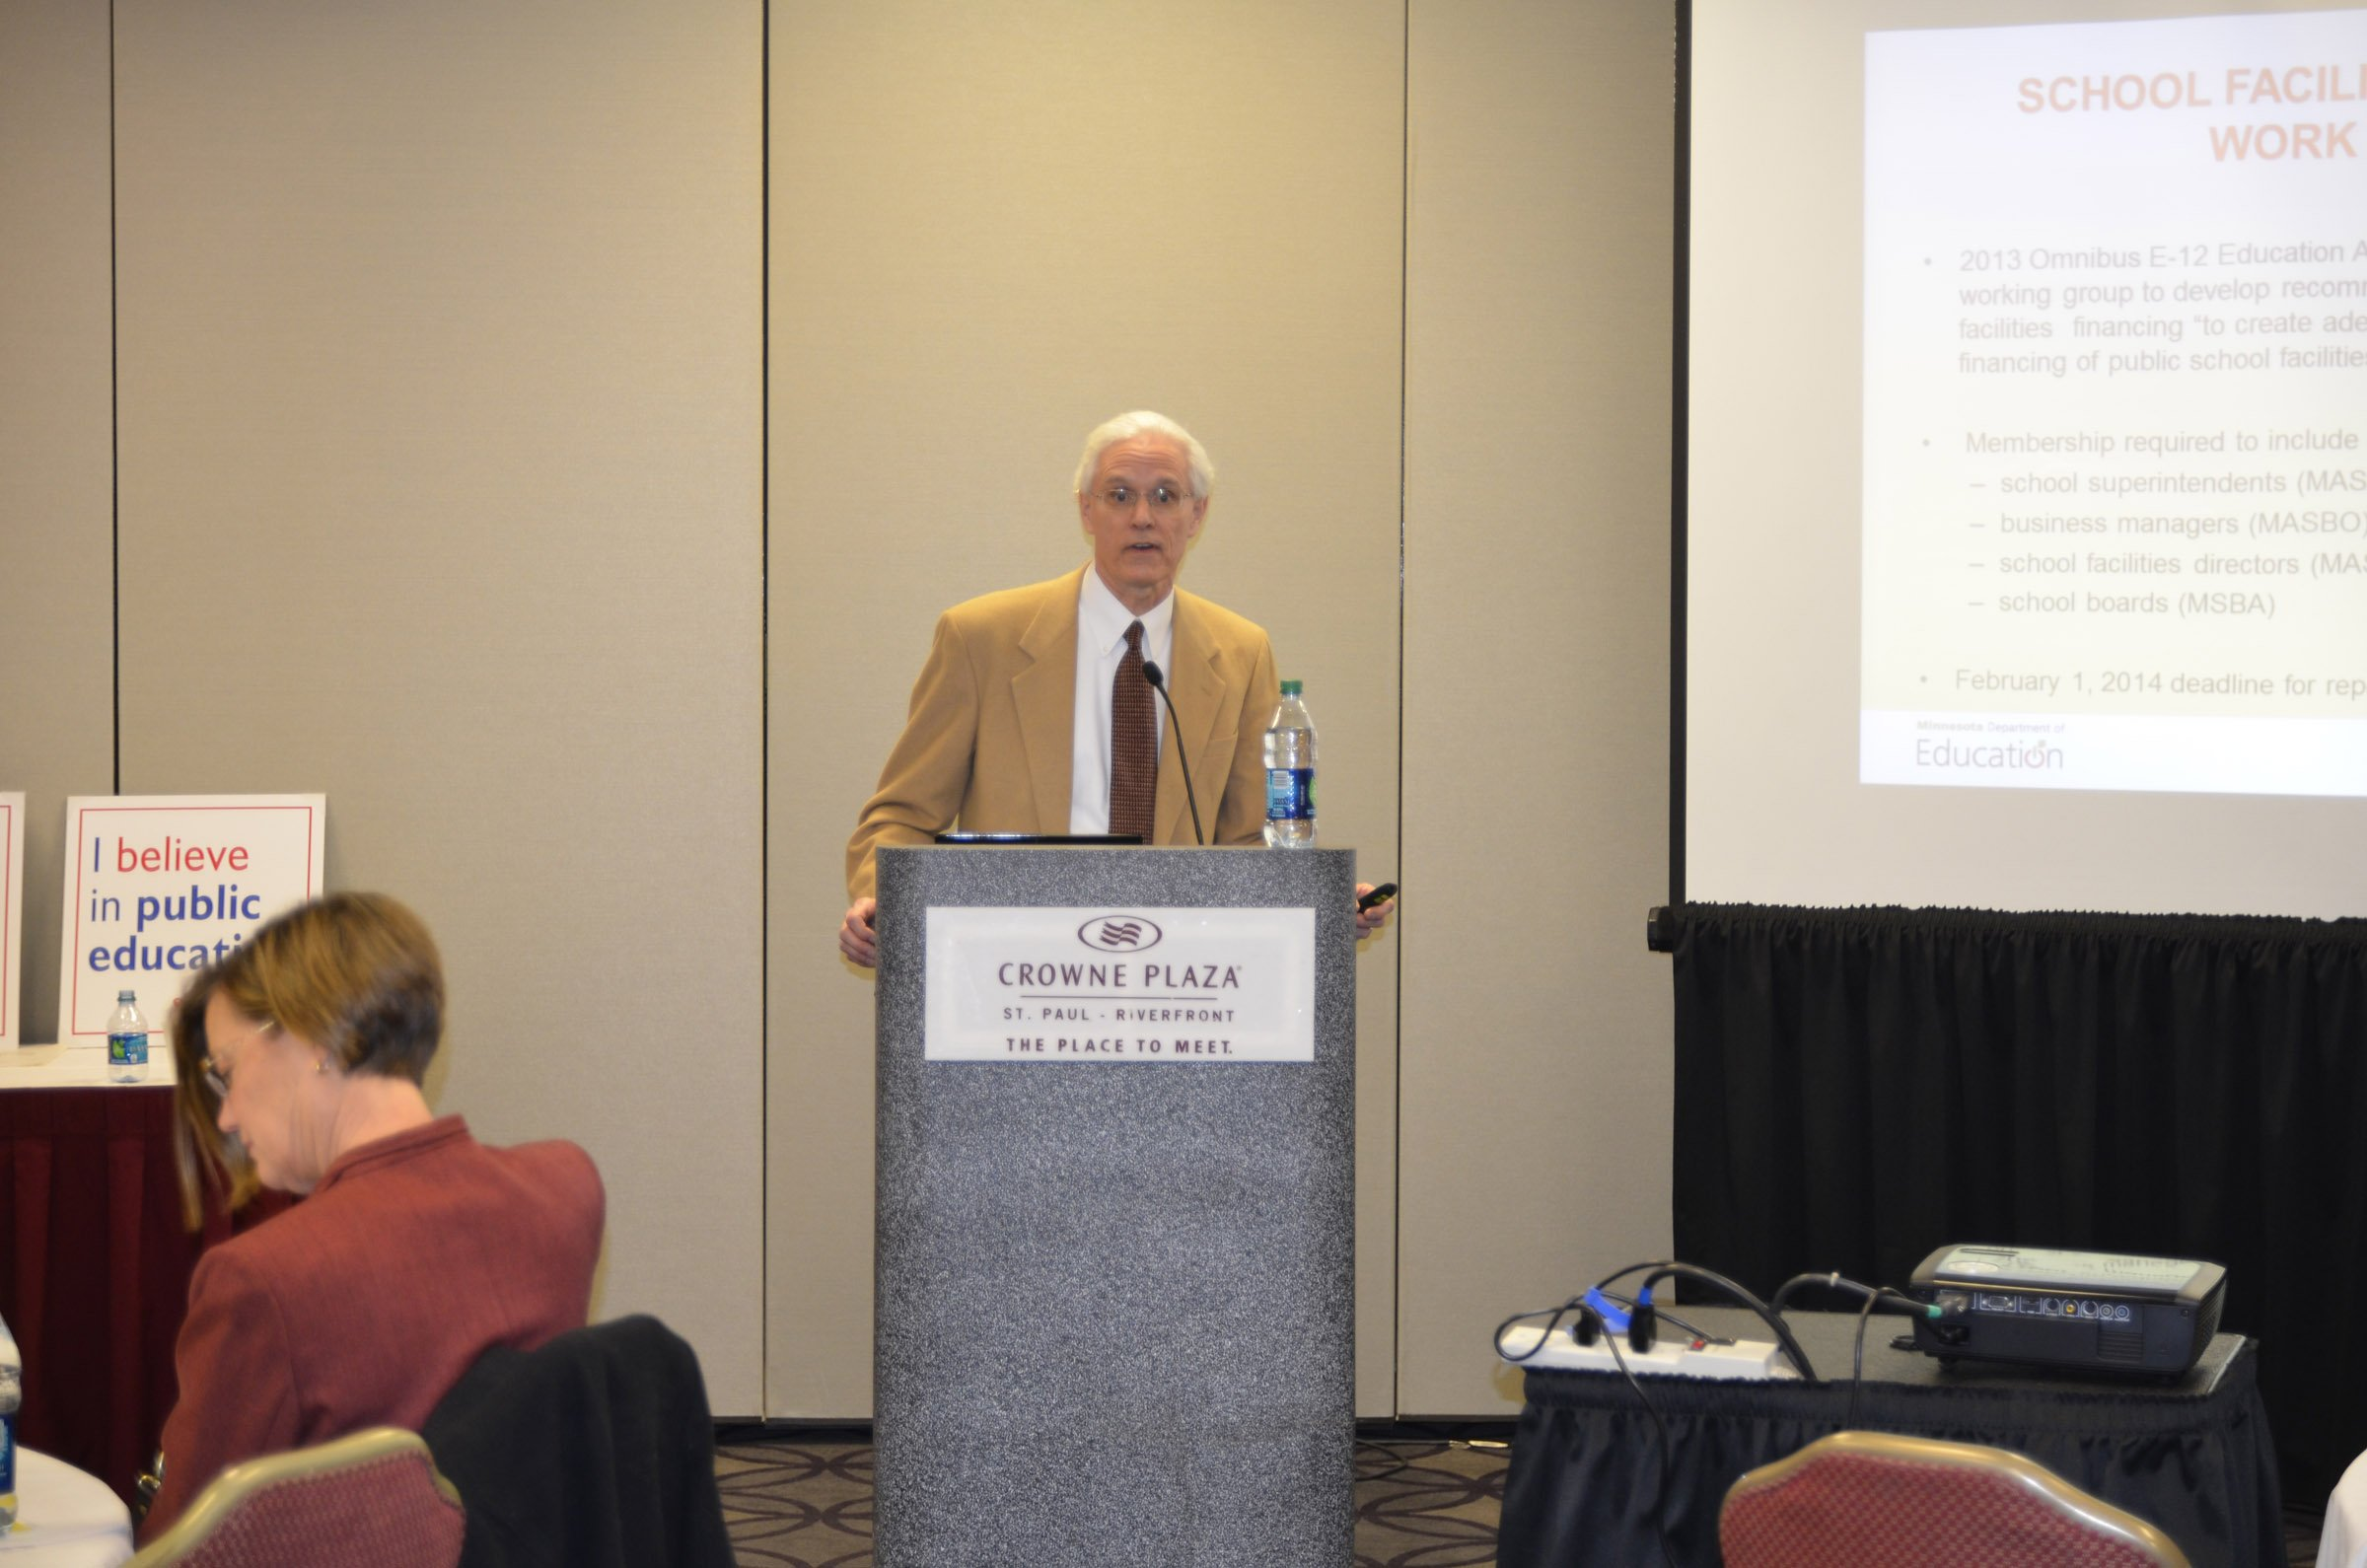 """Tom Melcher (School Finance Director for the Minnesota Department of Education) presented """"School Facilities Financing Working Group: Summary of Report and Recommendations"""" to MSBA members. You can view a copy of his presentation at https://www.mnmsba.org/Portals/0/PDFs/Advocacy/JLC-2015-SchoolFacilities.pdf."""